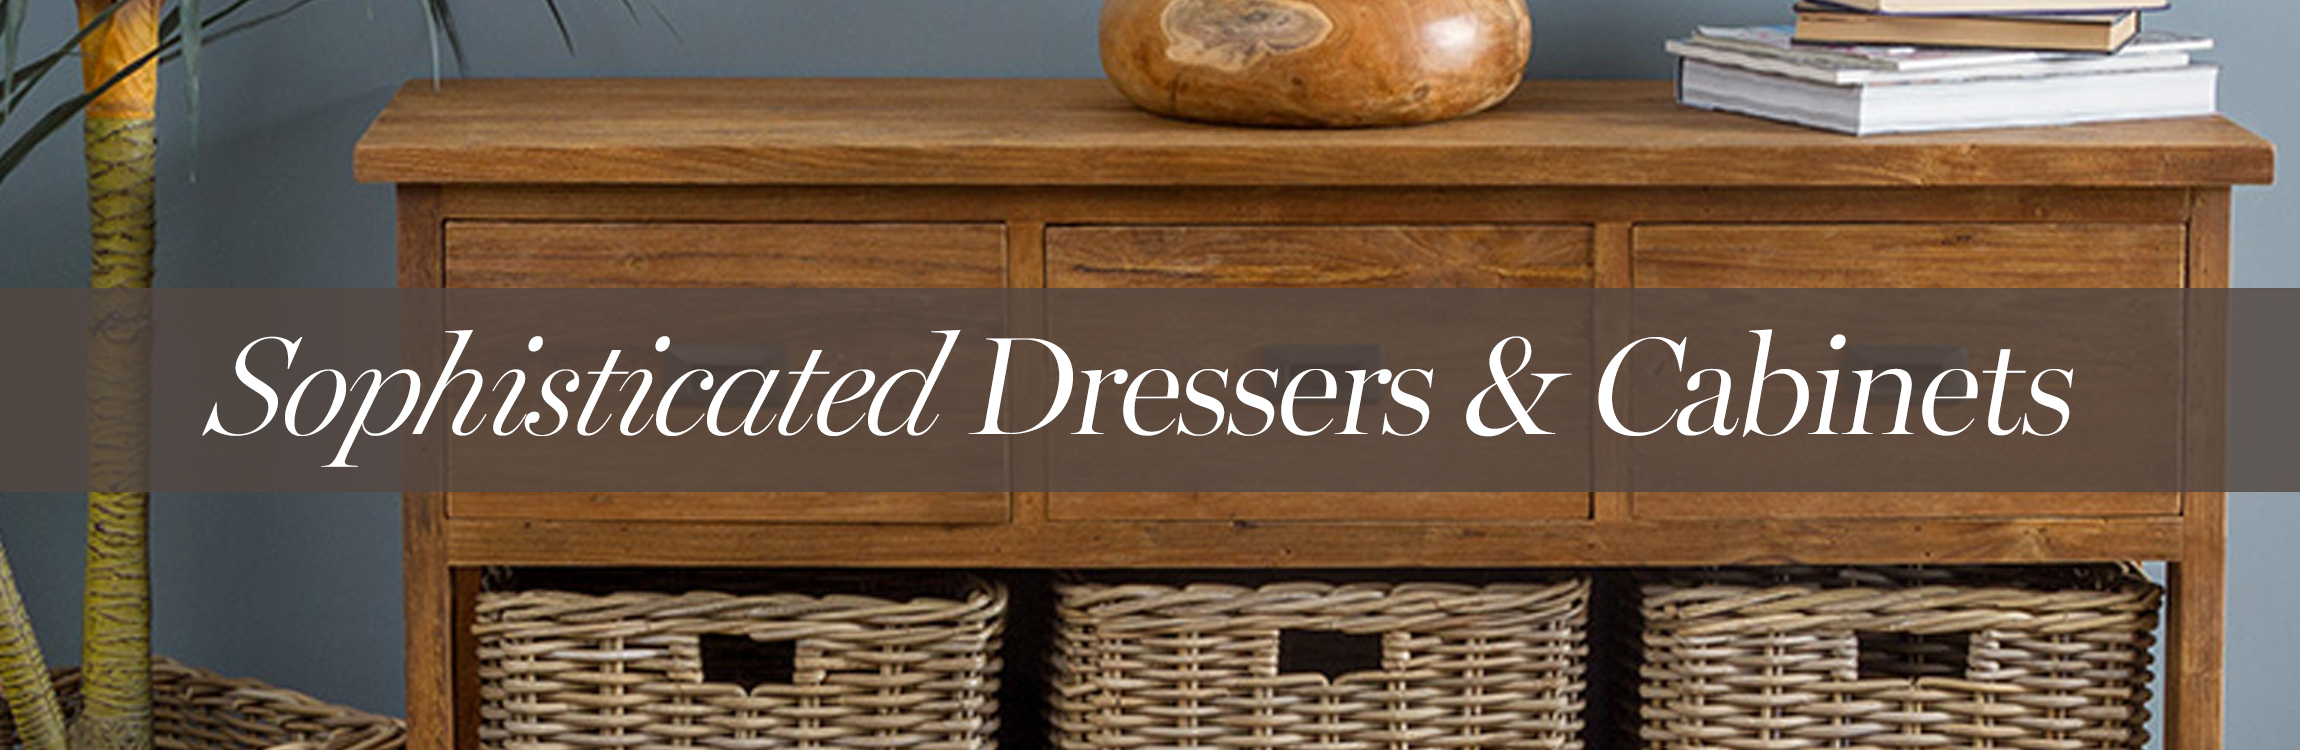 Dressers and Cabinets